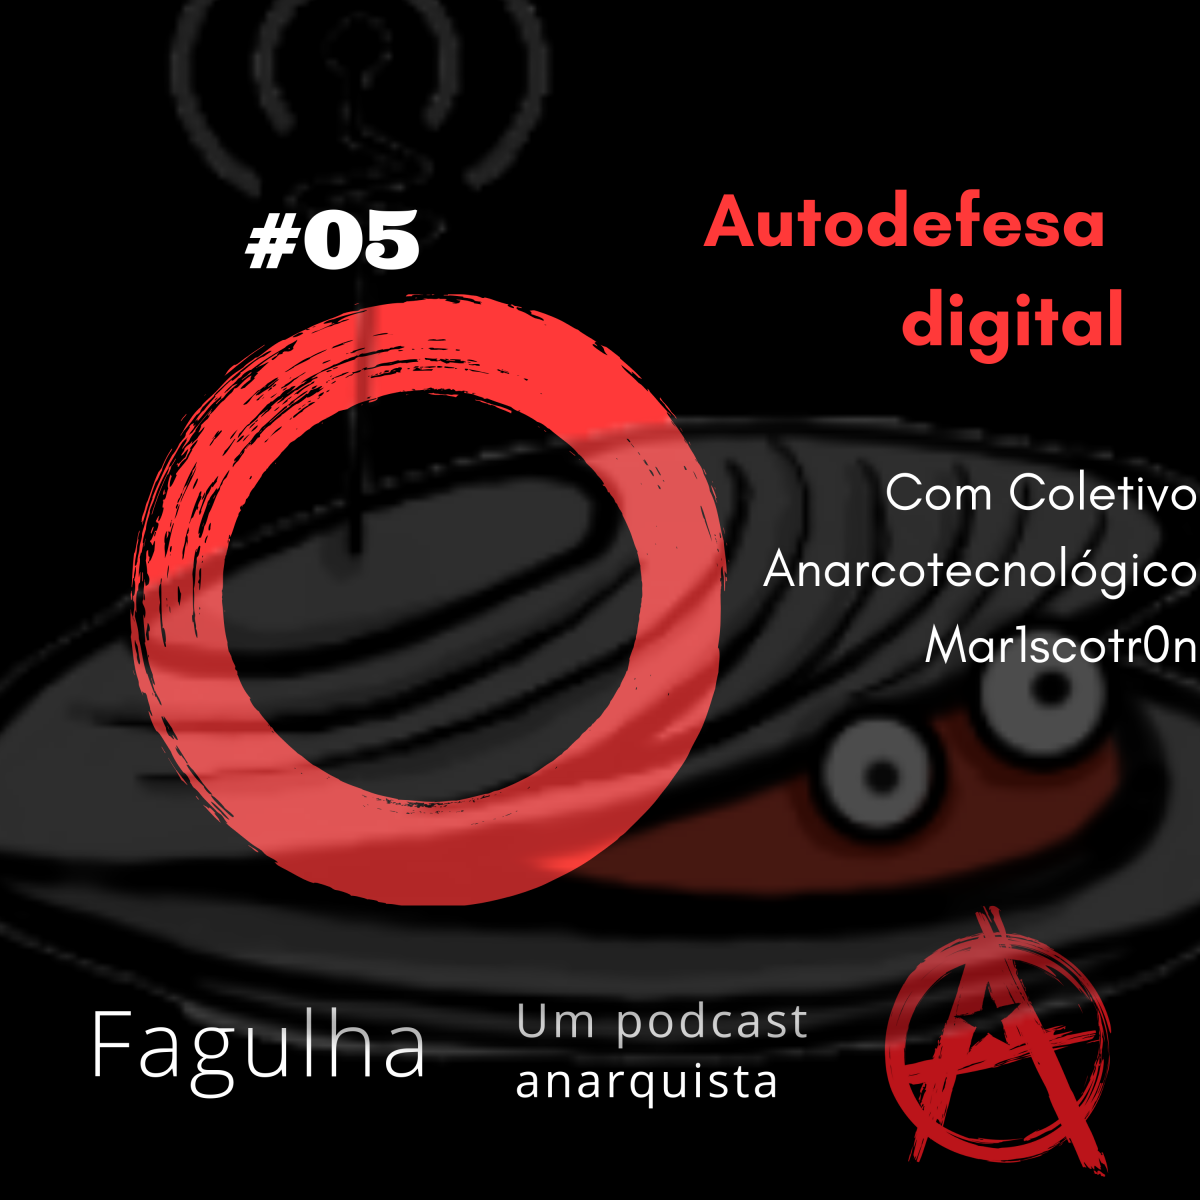 #05: Autodefesa digital, com Coletivo Anarcotecnológico Mar1scotr0n